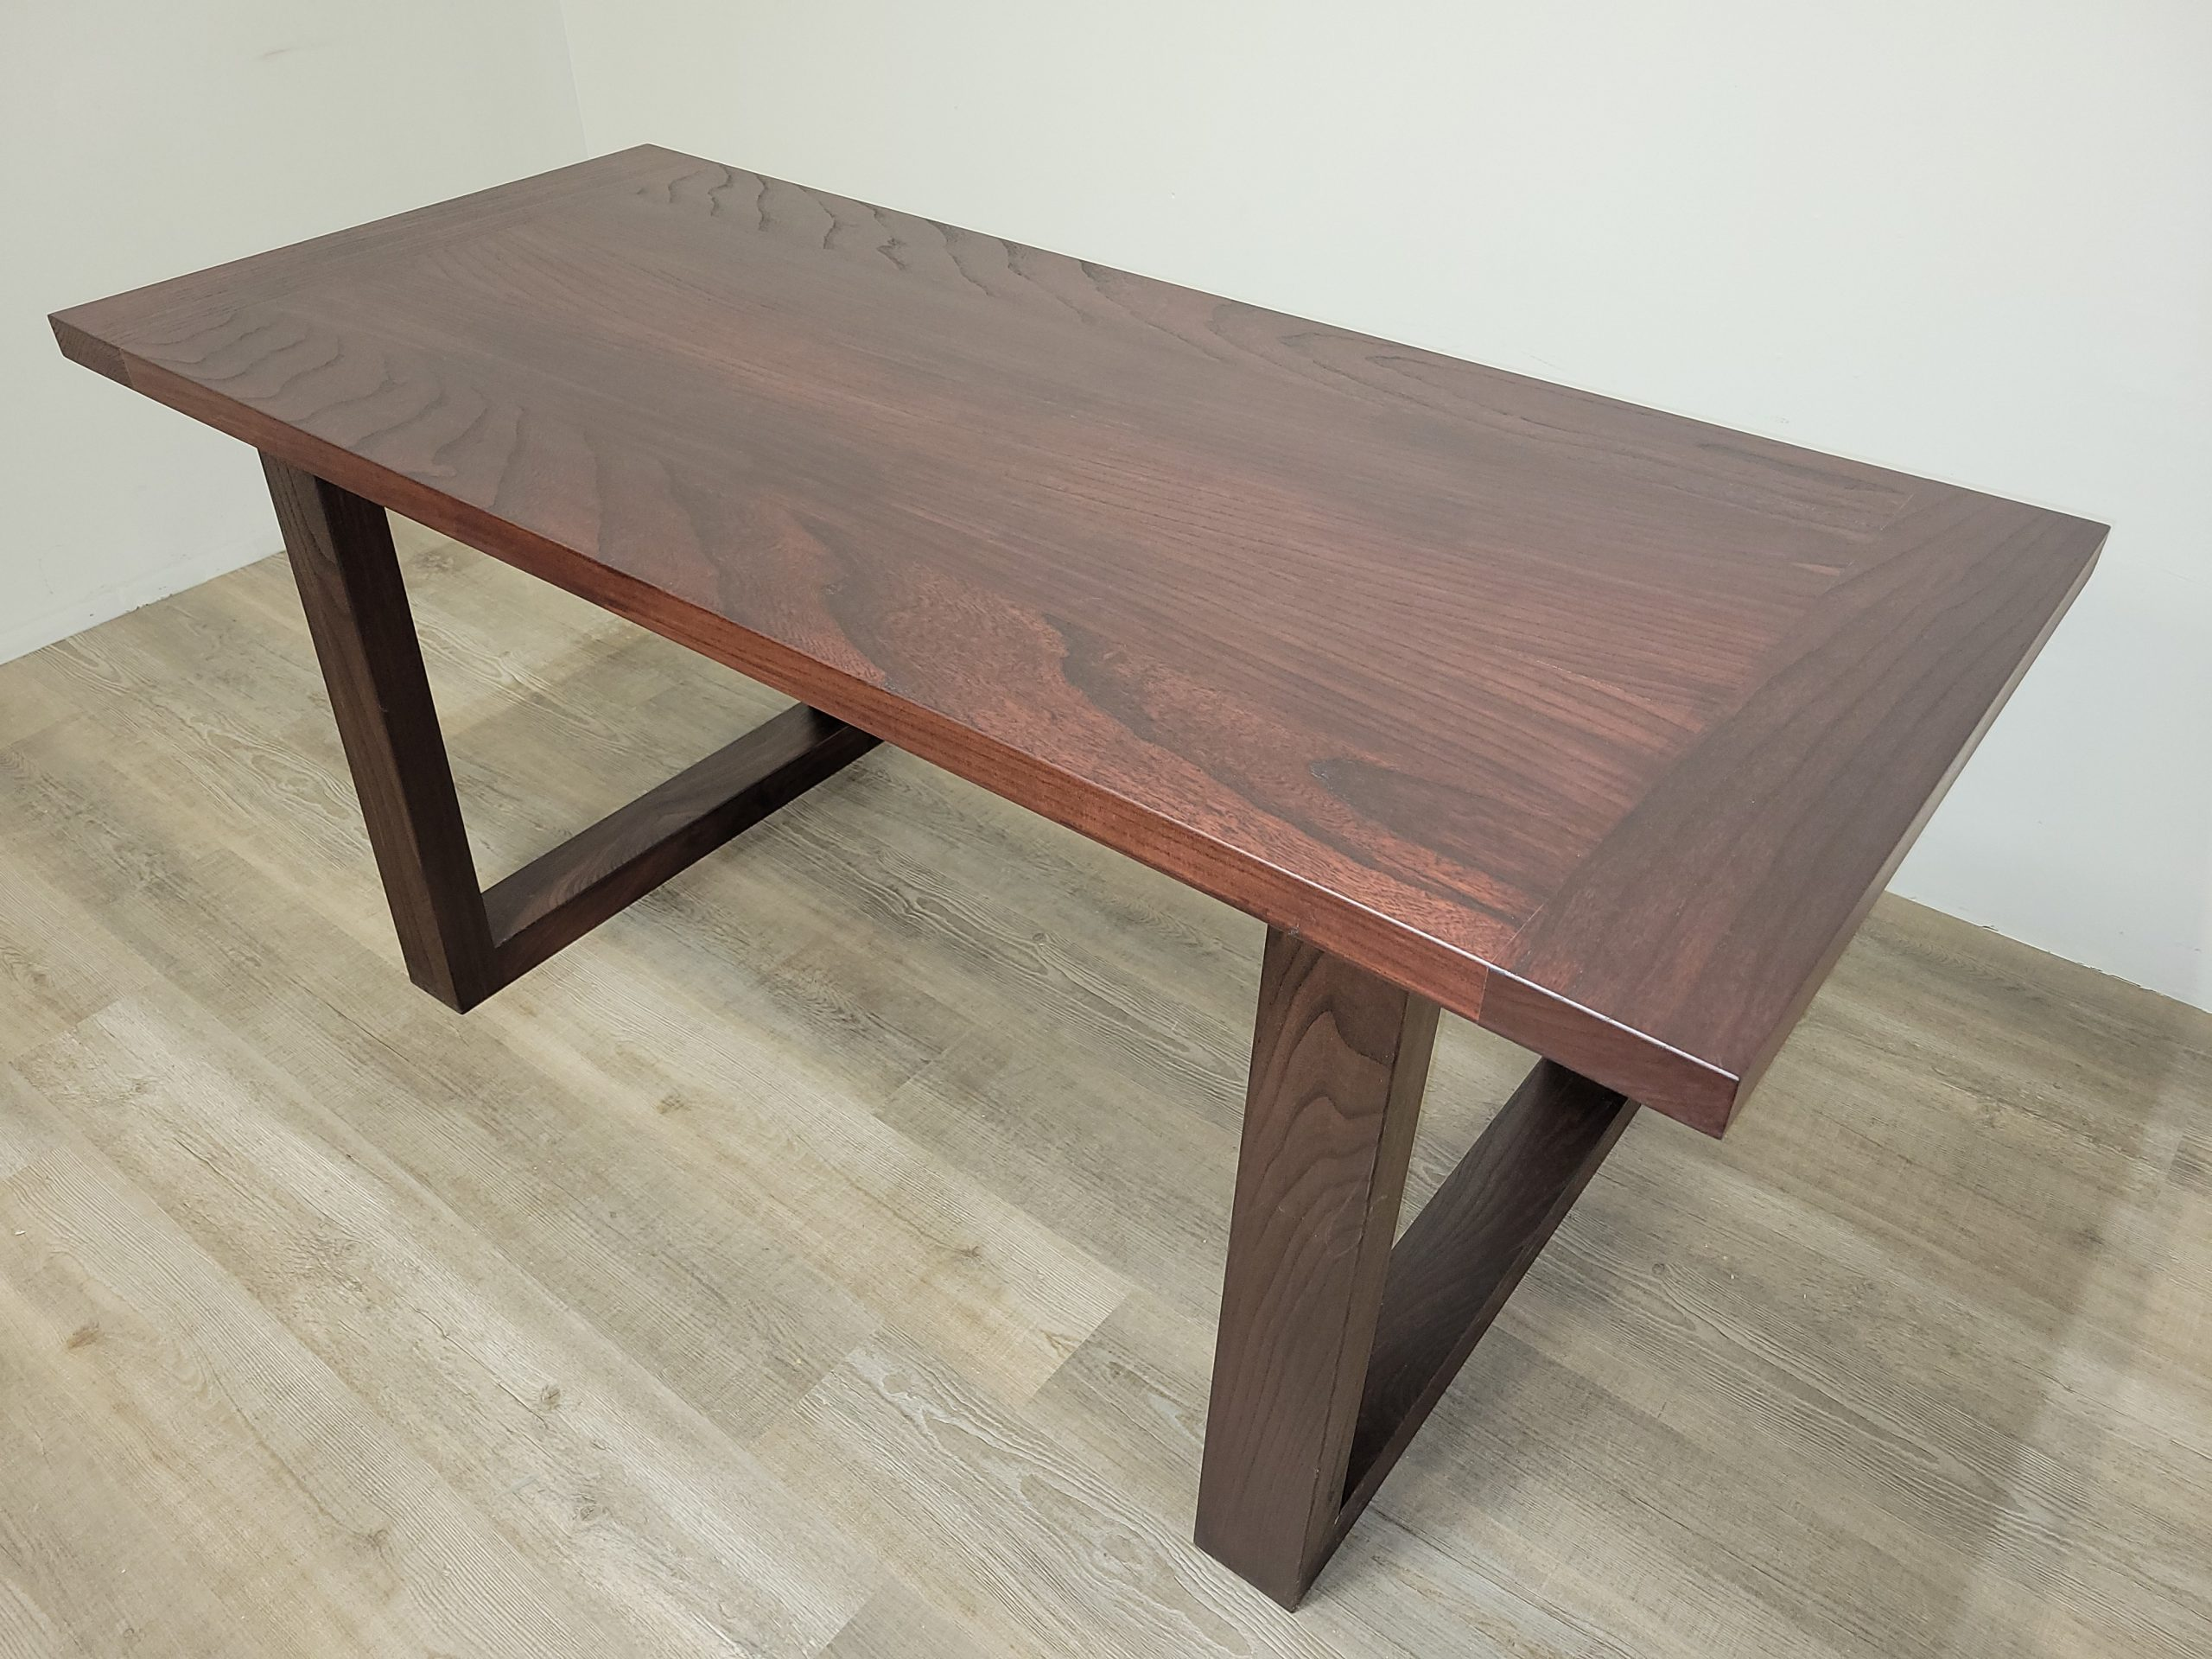 https://competitivewoodcraft.com/wp-content/uploads/2020/11/Dining-Tabe-scaled.jpg